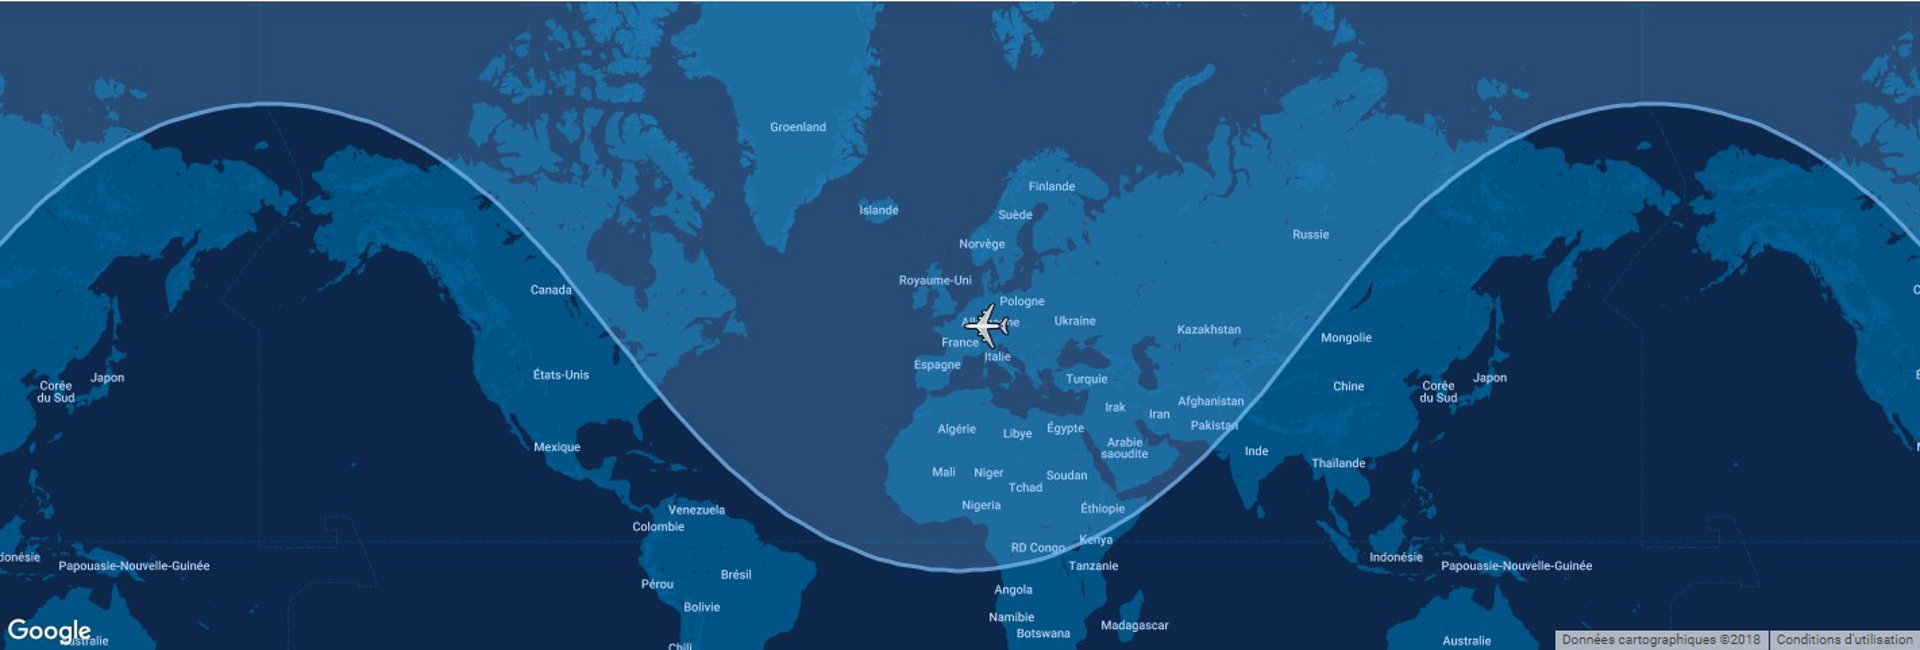 This diagram shows the typical range for Airbus' A320neo commercial aircraft overlaid on a global map.